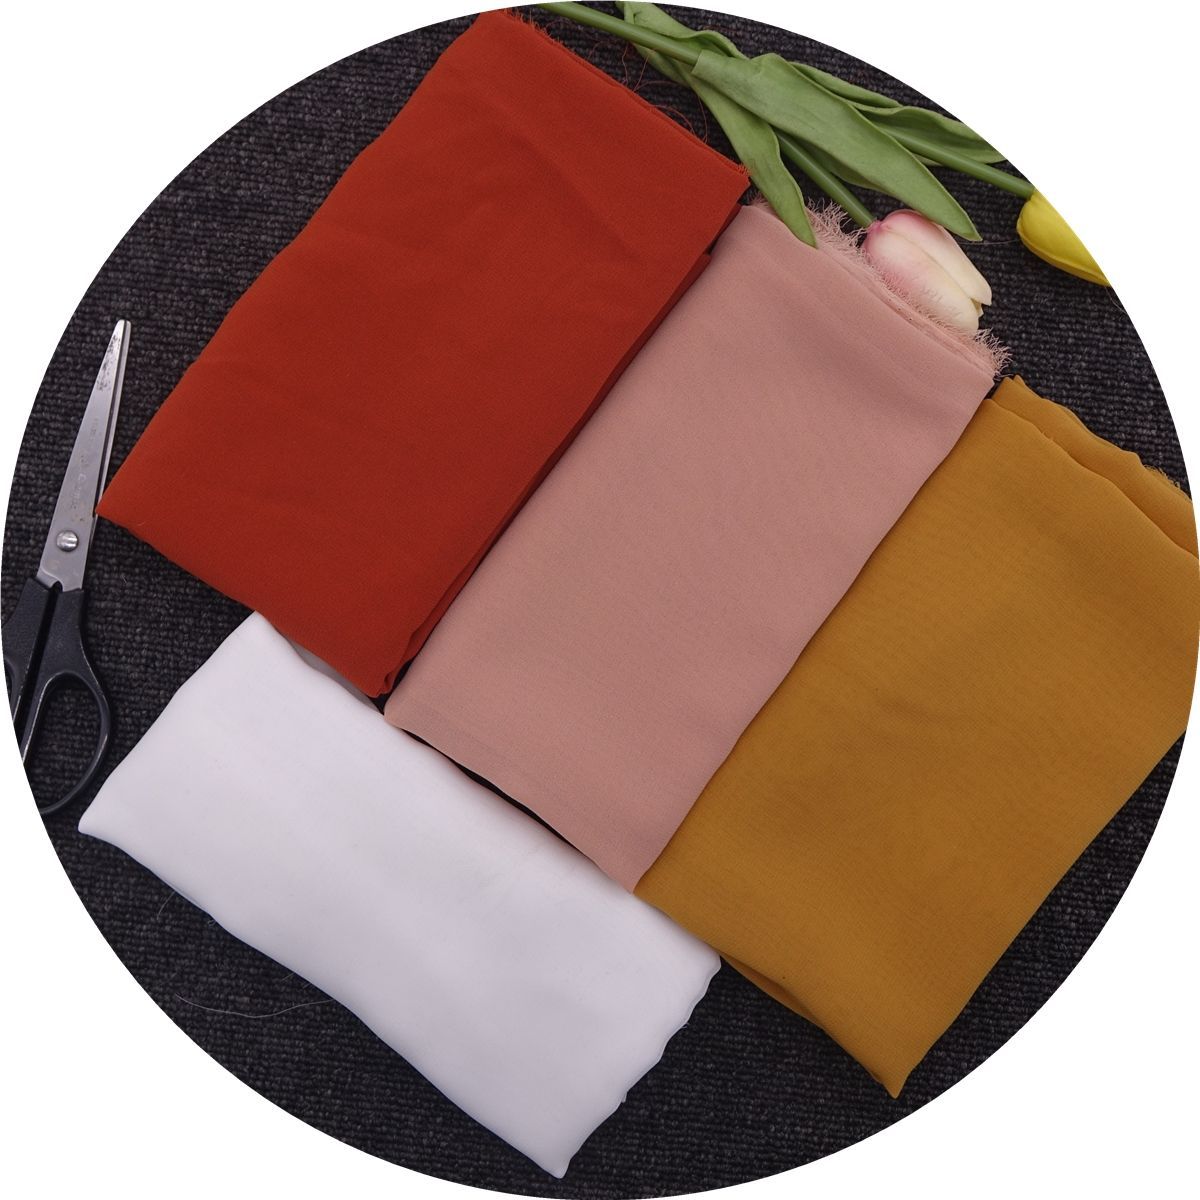 Polyester ITY pure chiffon fabric raw white composite filament colored woven chiffon voile crepe textiles fabric chiffon scarves